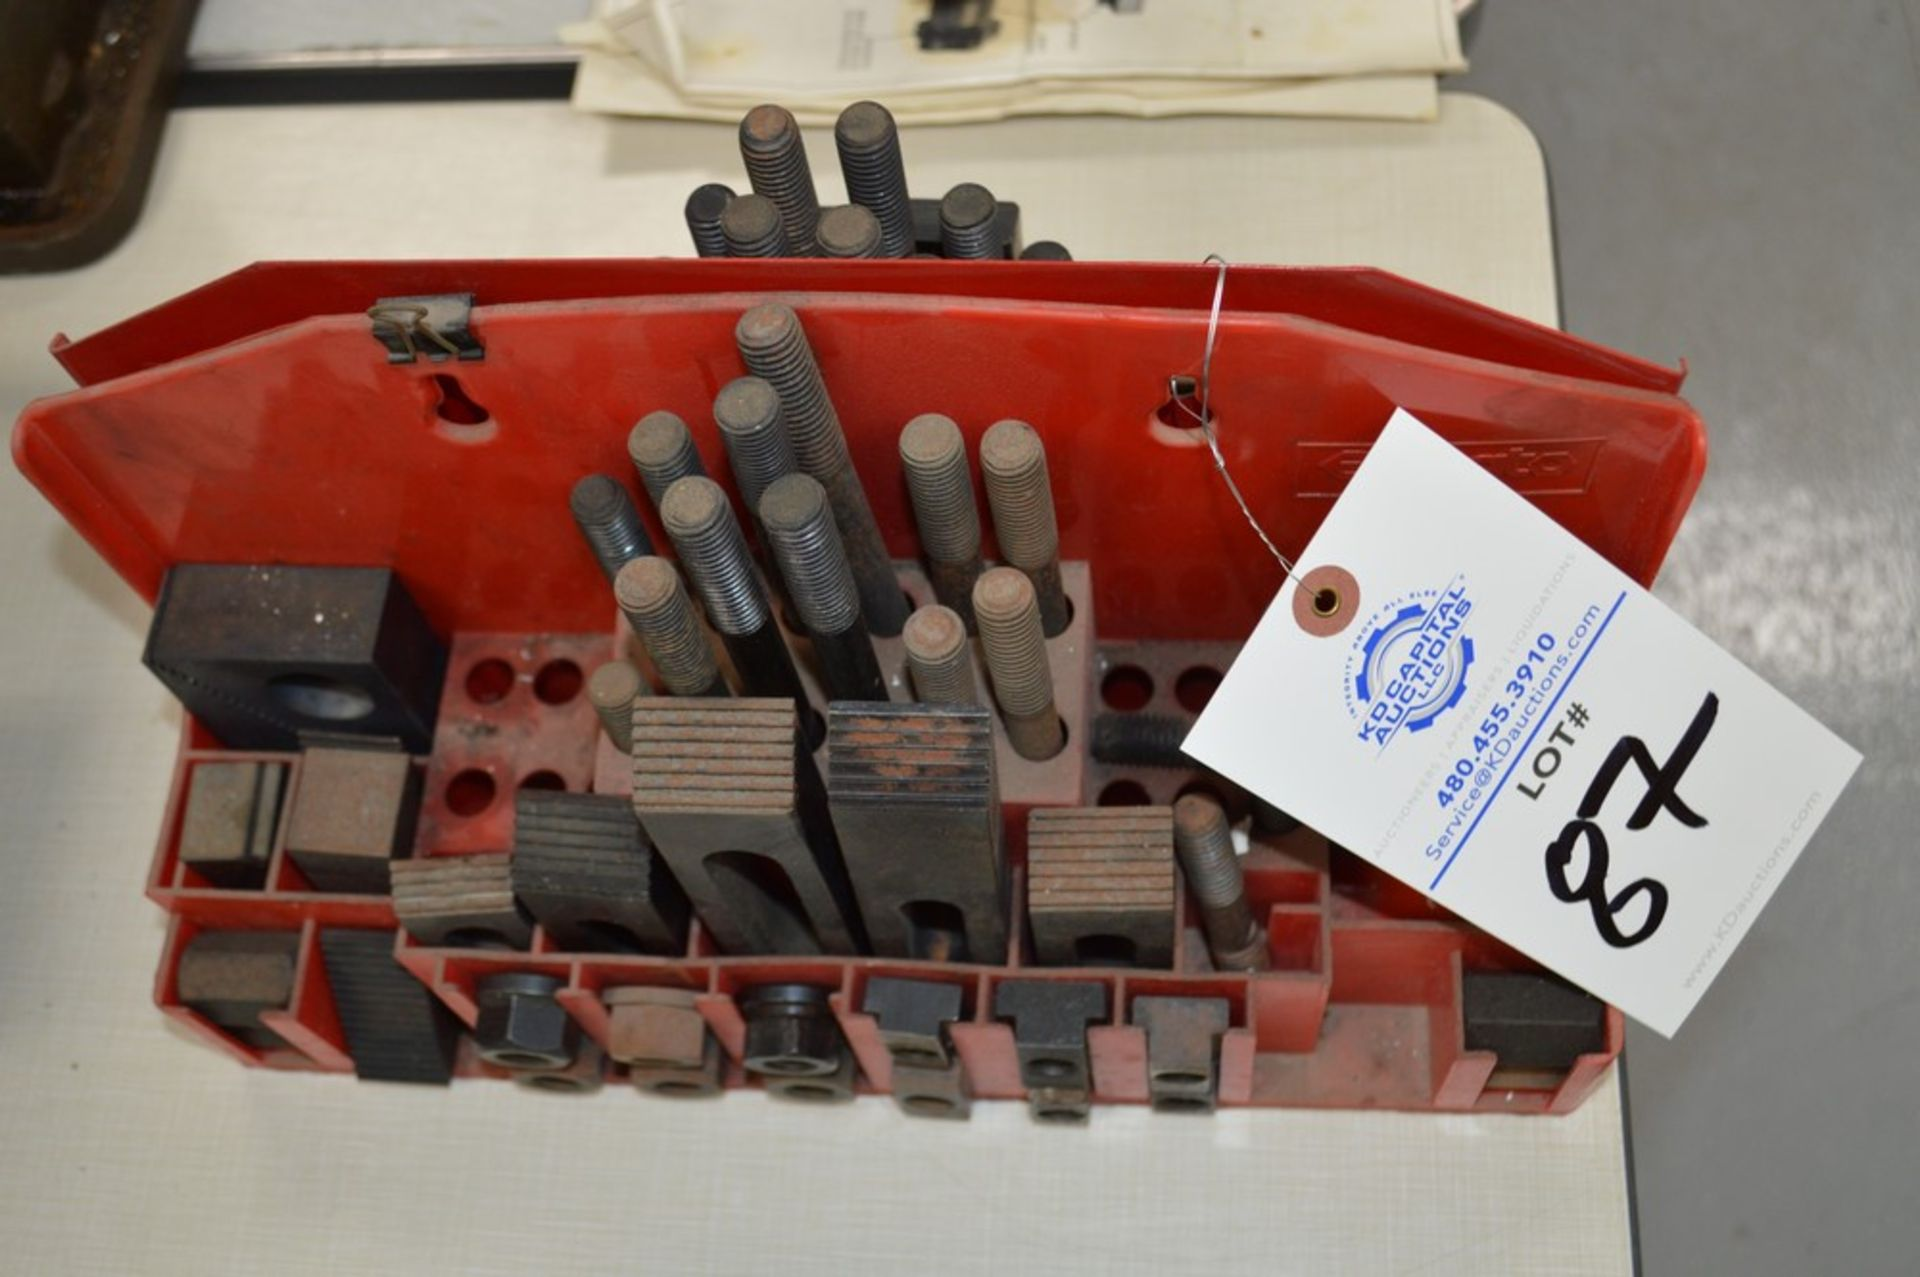 (2) partial mill setup kits with red metal holders - Image 3 of 3